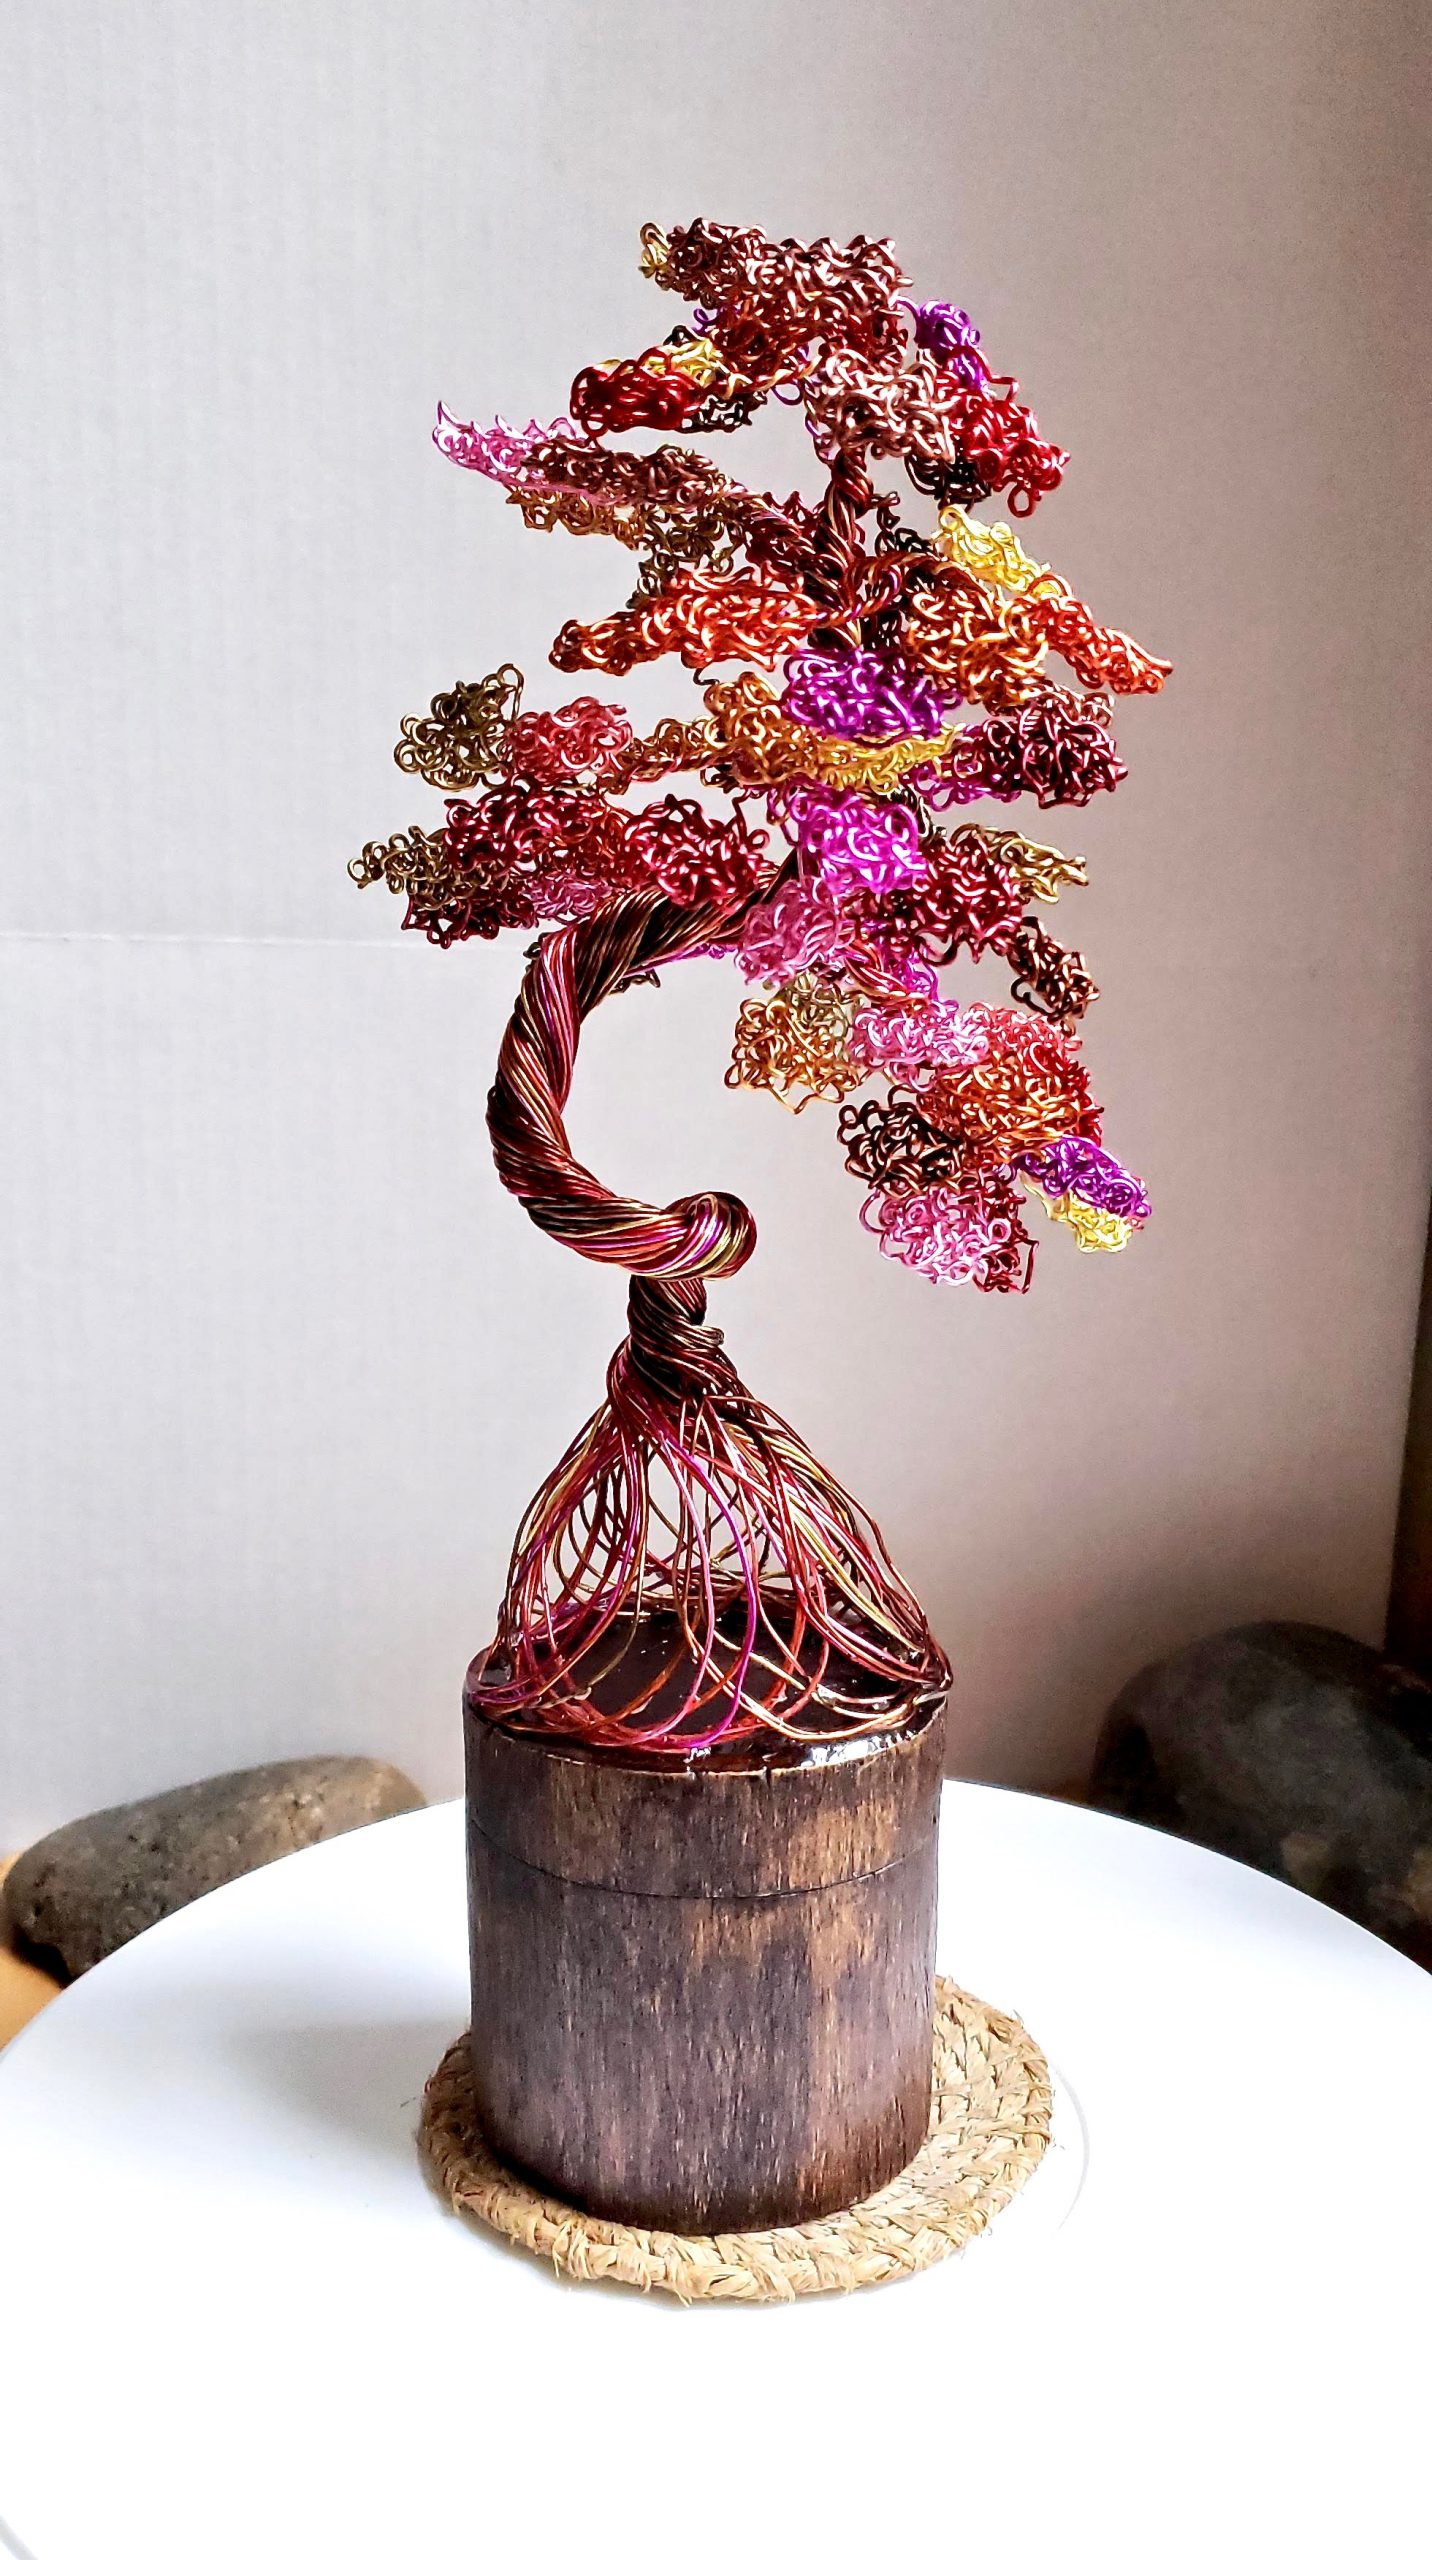 Sunset Dancing Tree Sculpture on real wood base